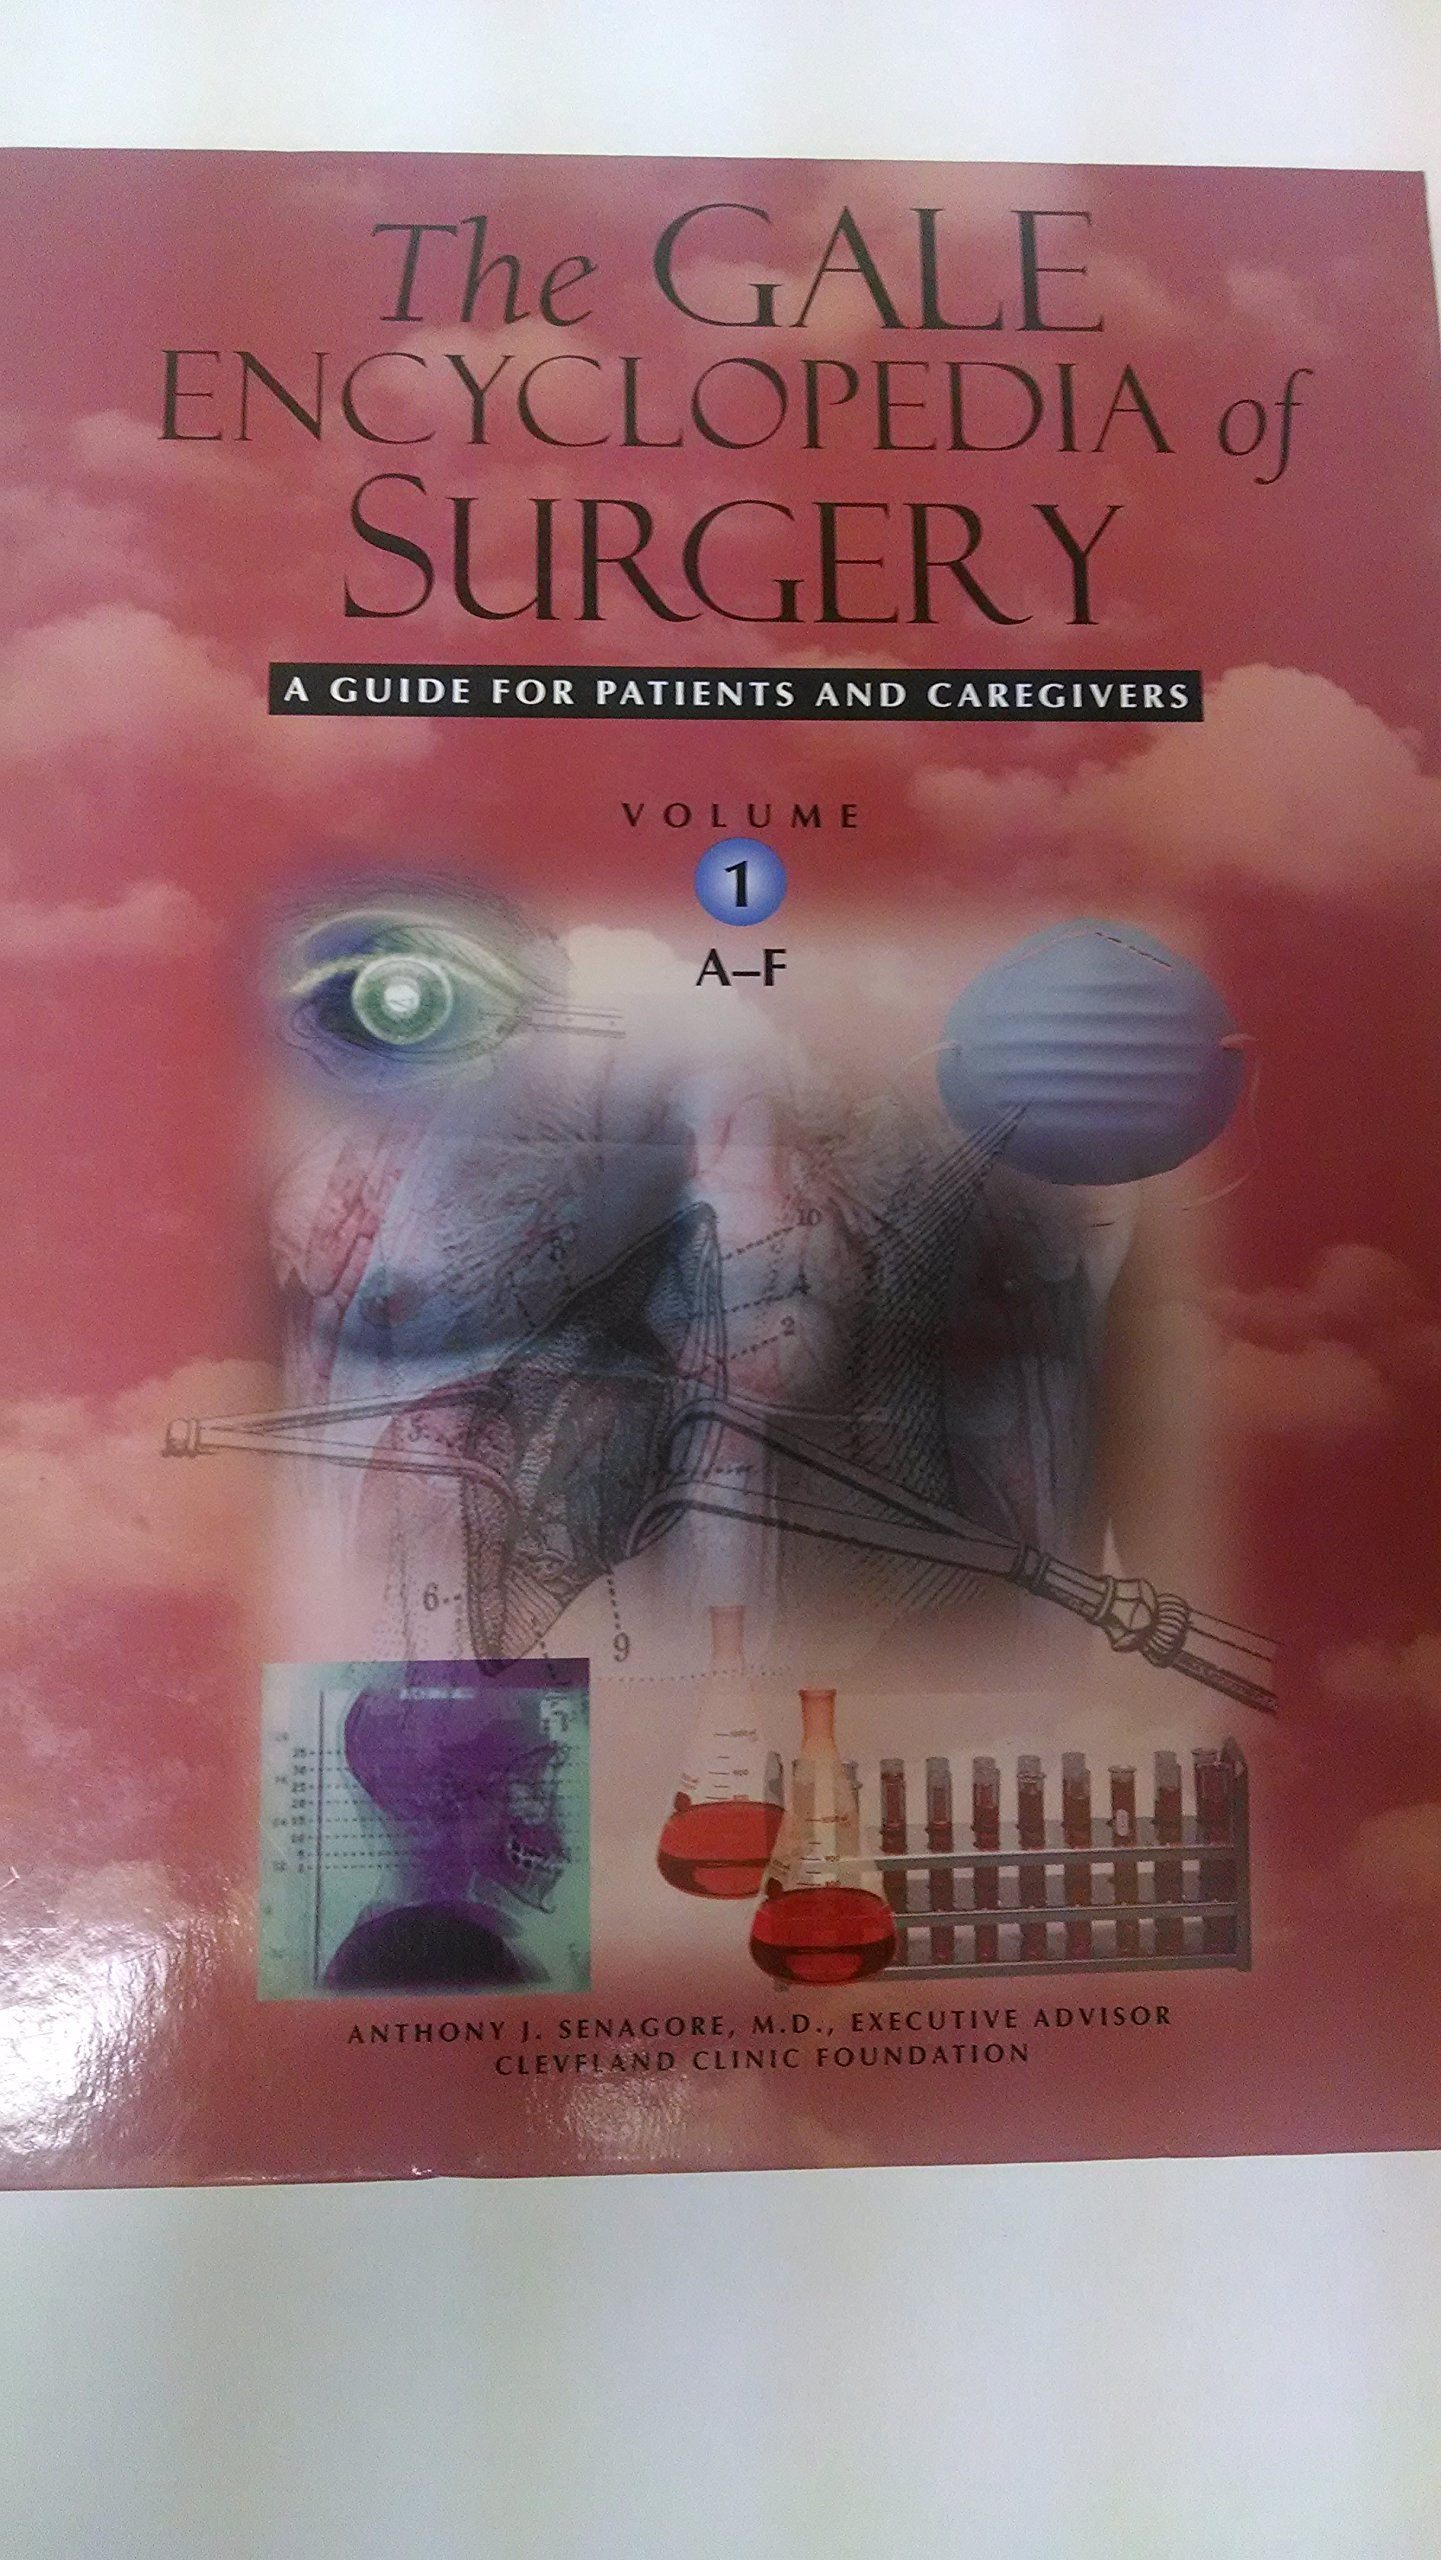 The Gale encyclopedia of surgery: a guide for patients and caregivers